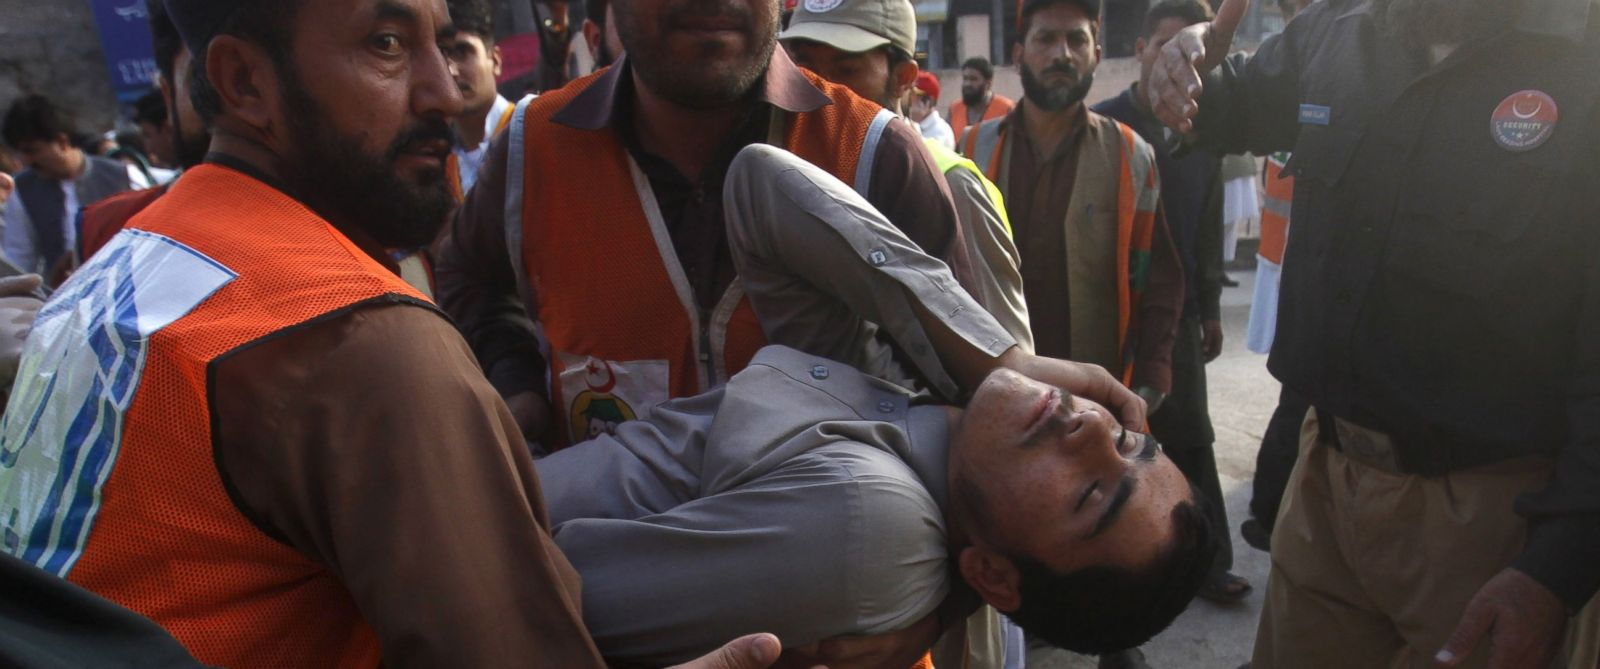 PHOTO: Rescue workers carry a man, who was injured during an earthquake, at the Lady Reading hospital, Peshawar, Pakistan, Oct. 26, 2015.